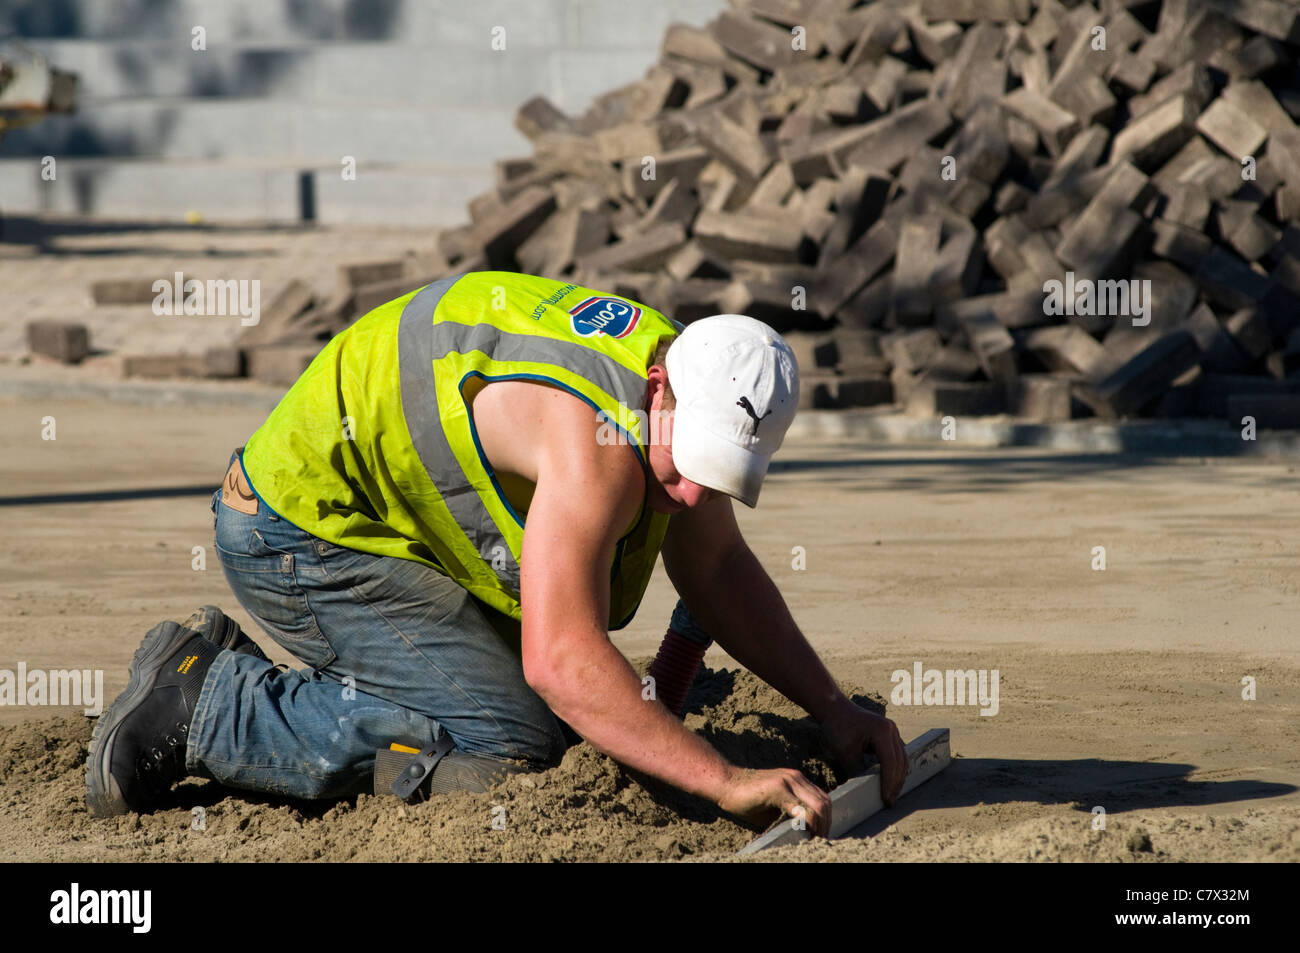 A workman laying new paving stones at a construction site during a period of hot weather - Stock Image